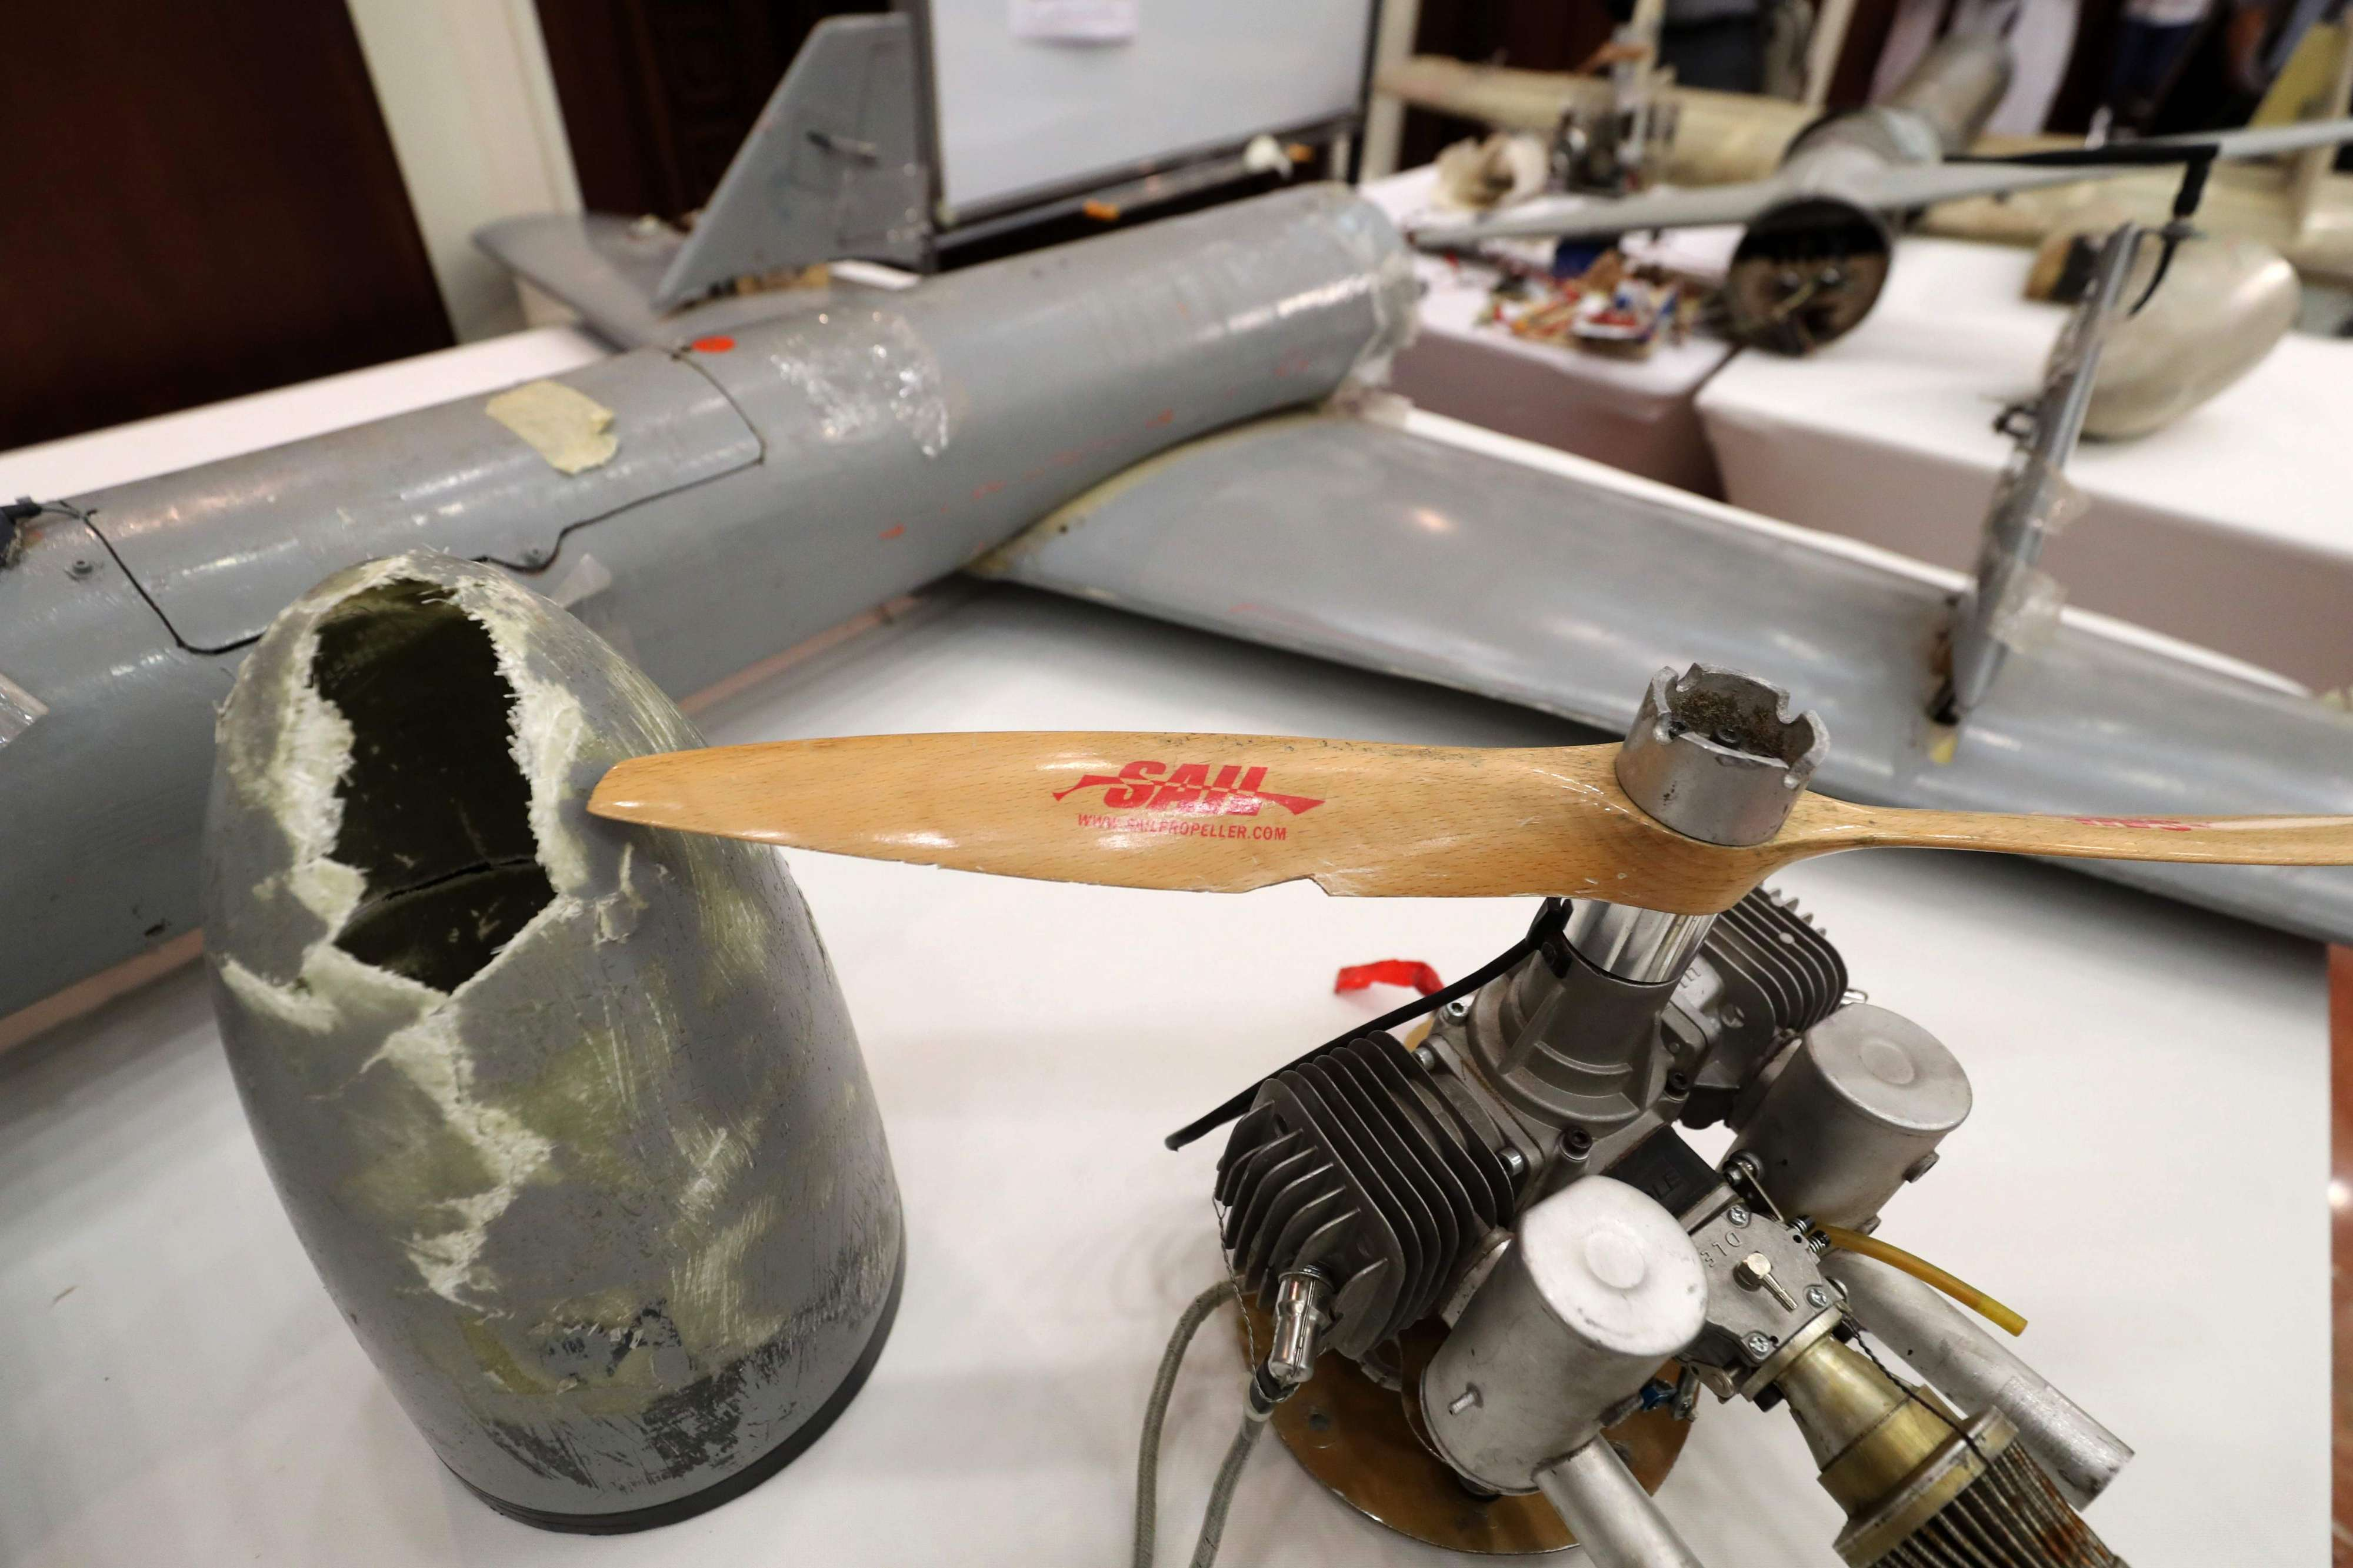 Iran-made Ababil drones and their parts, which were used by Houthi rebels in Yemen, on display in Abu Dhabi, on June 19. (AFP)